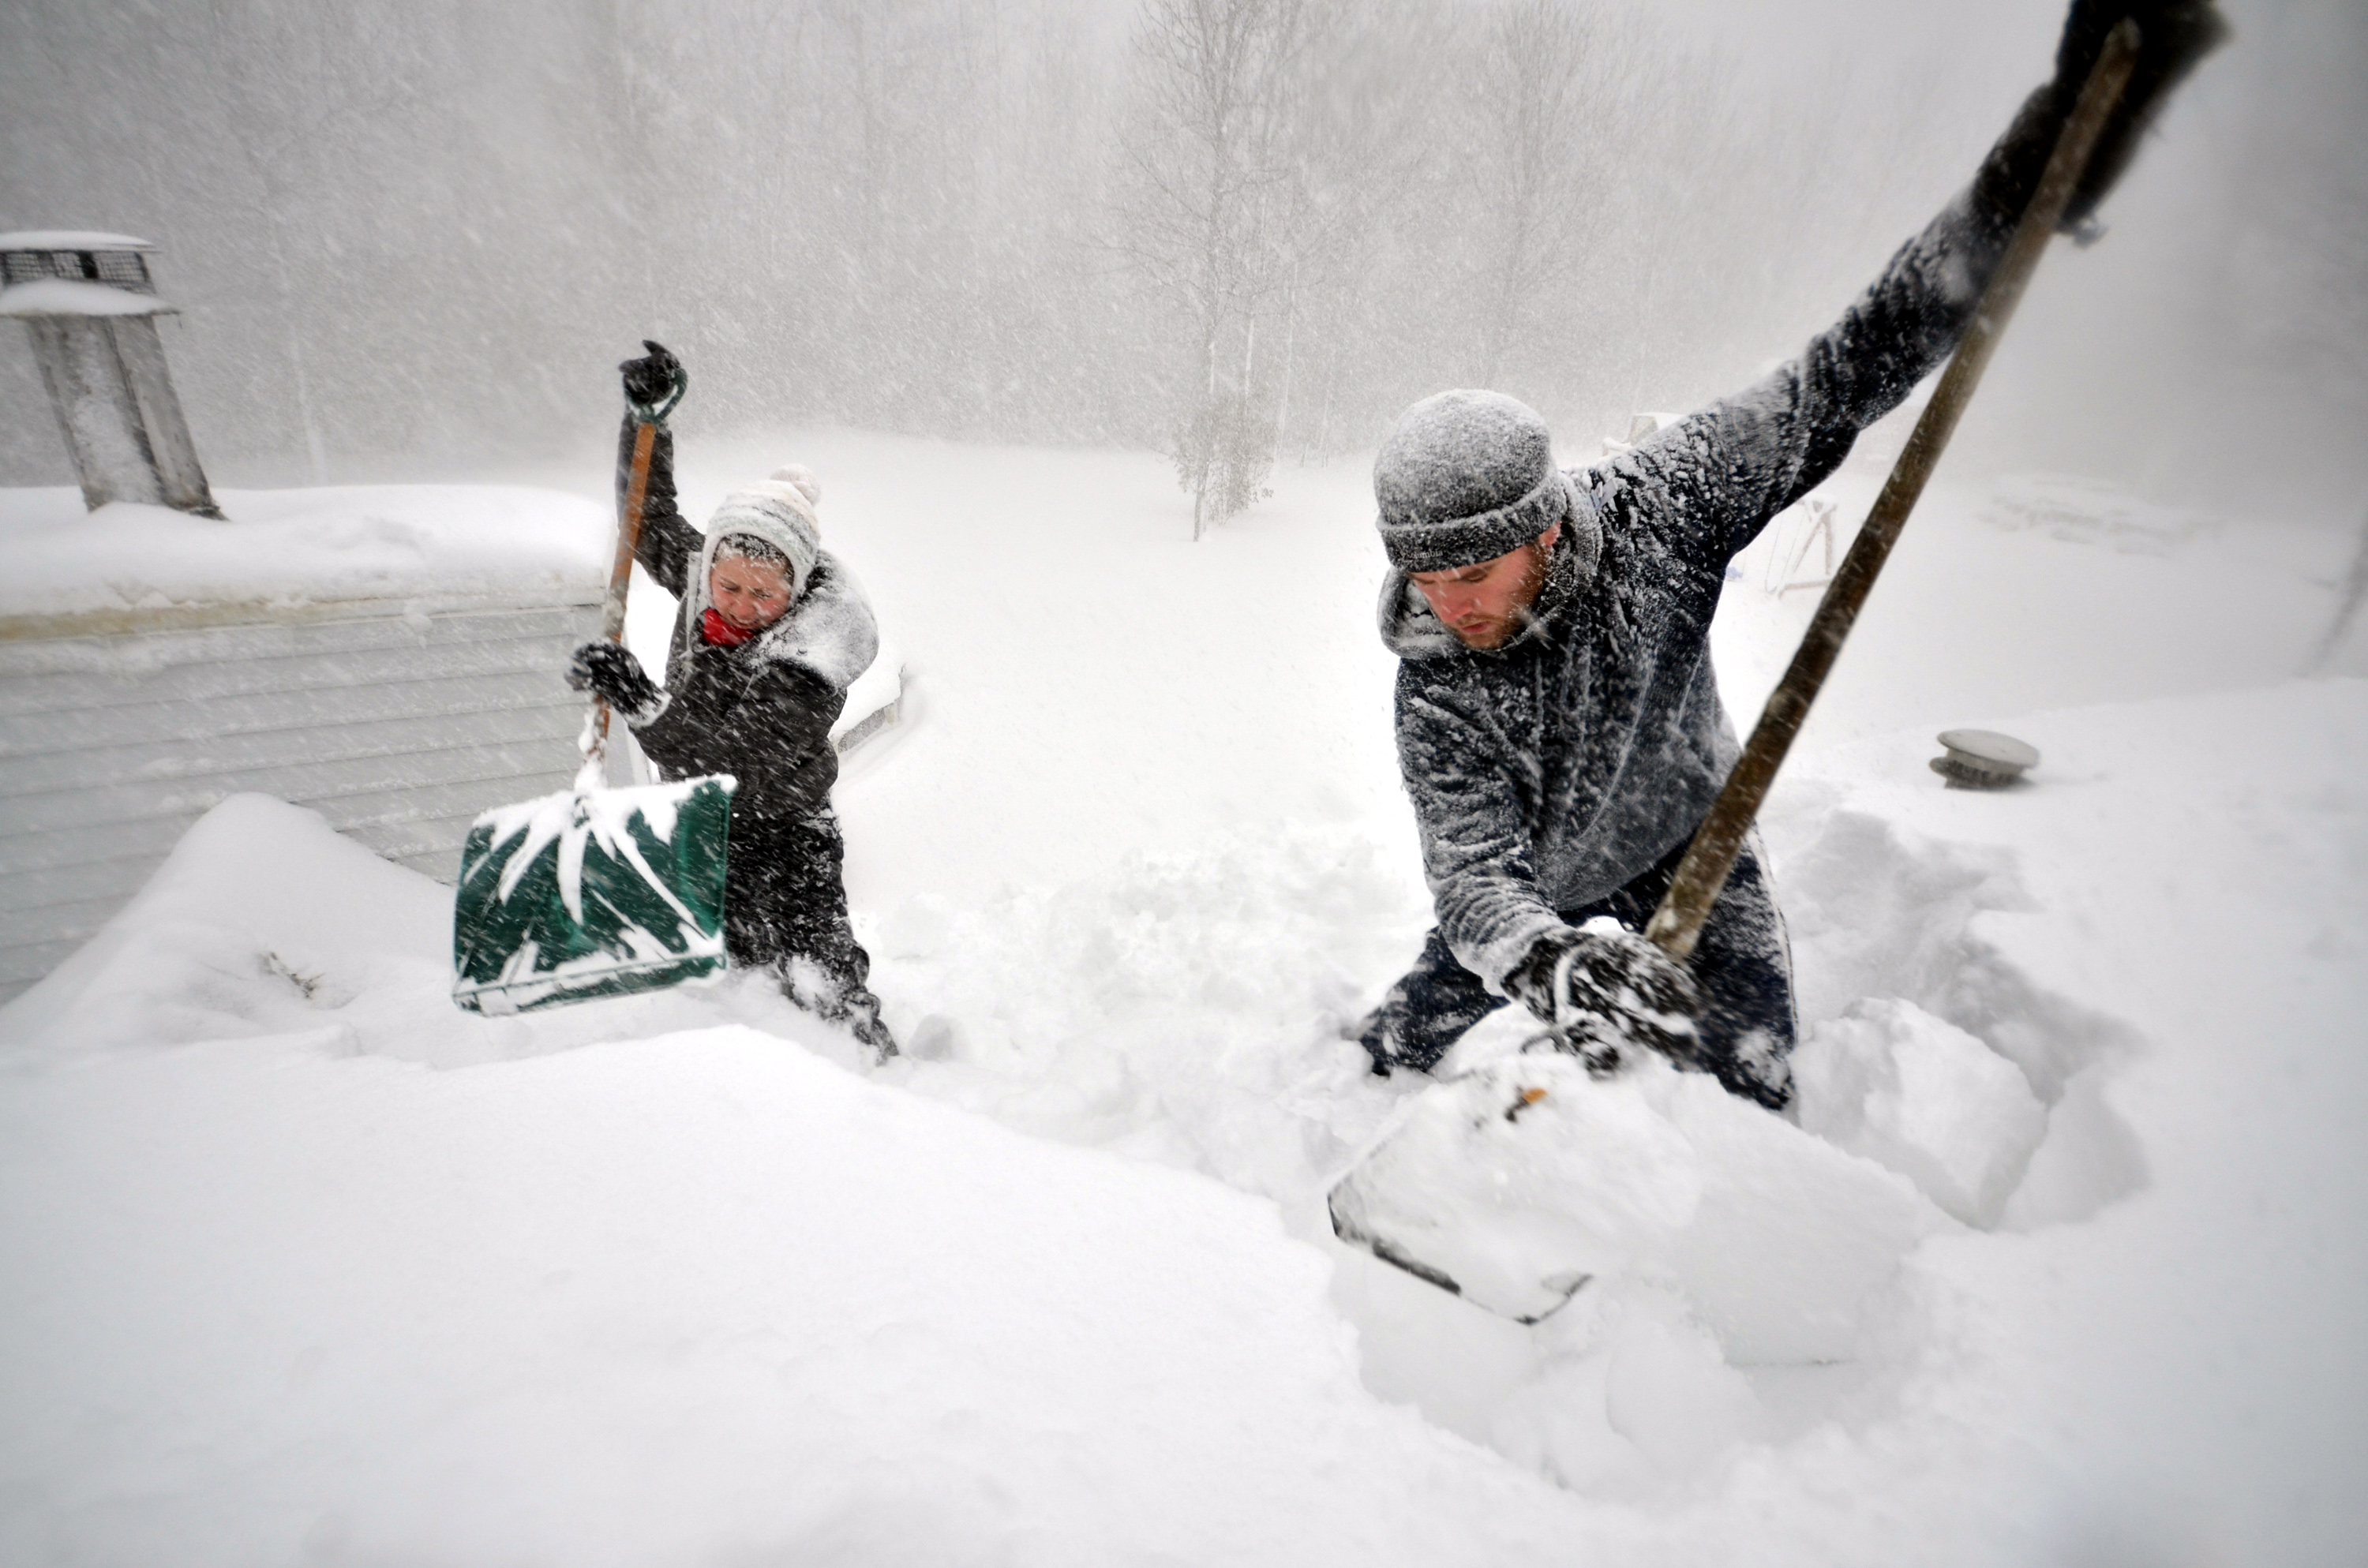 Tami Normile and Richard Brooks attempt to remove some of the five feet of snow from a roof top on November 20, 2014 in the Lakeview neighborhood of Buffalo, New York.